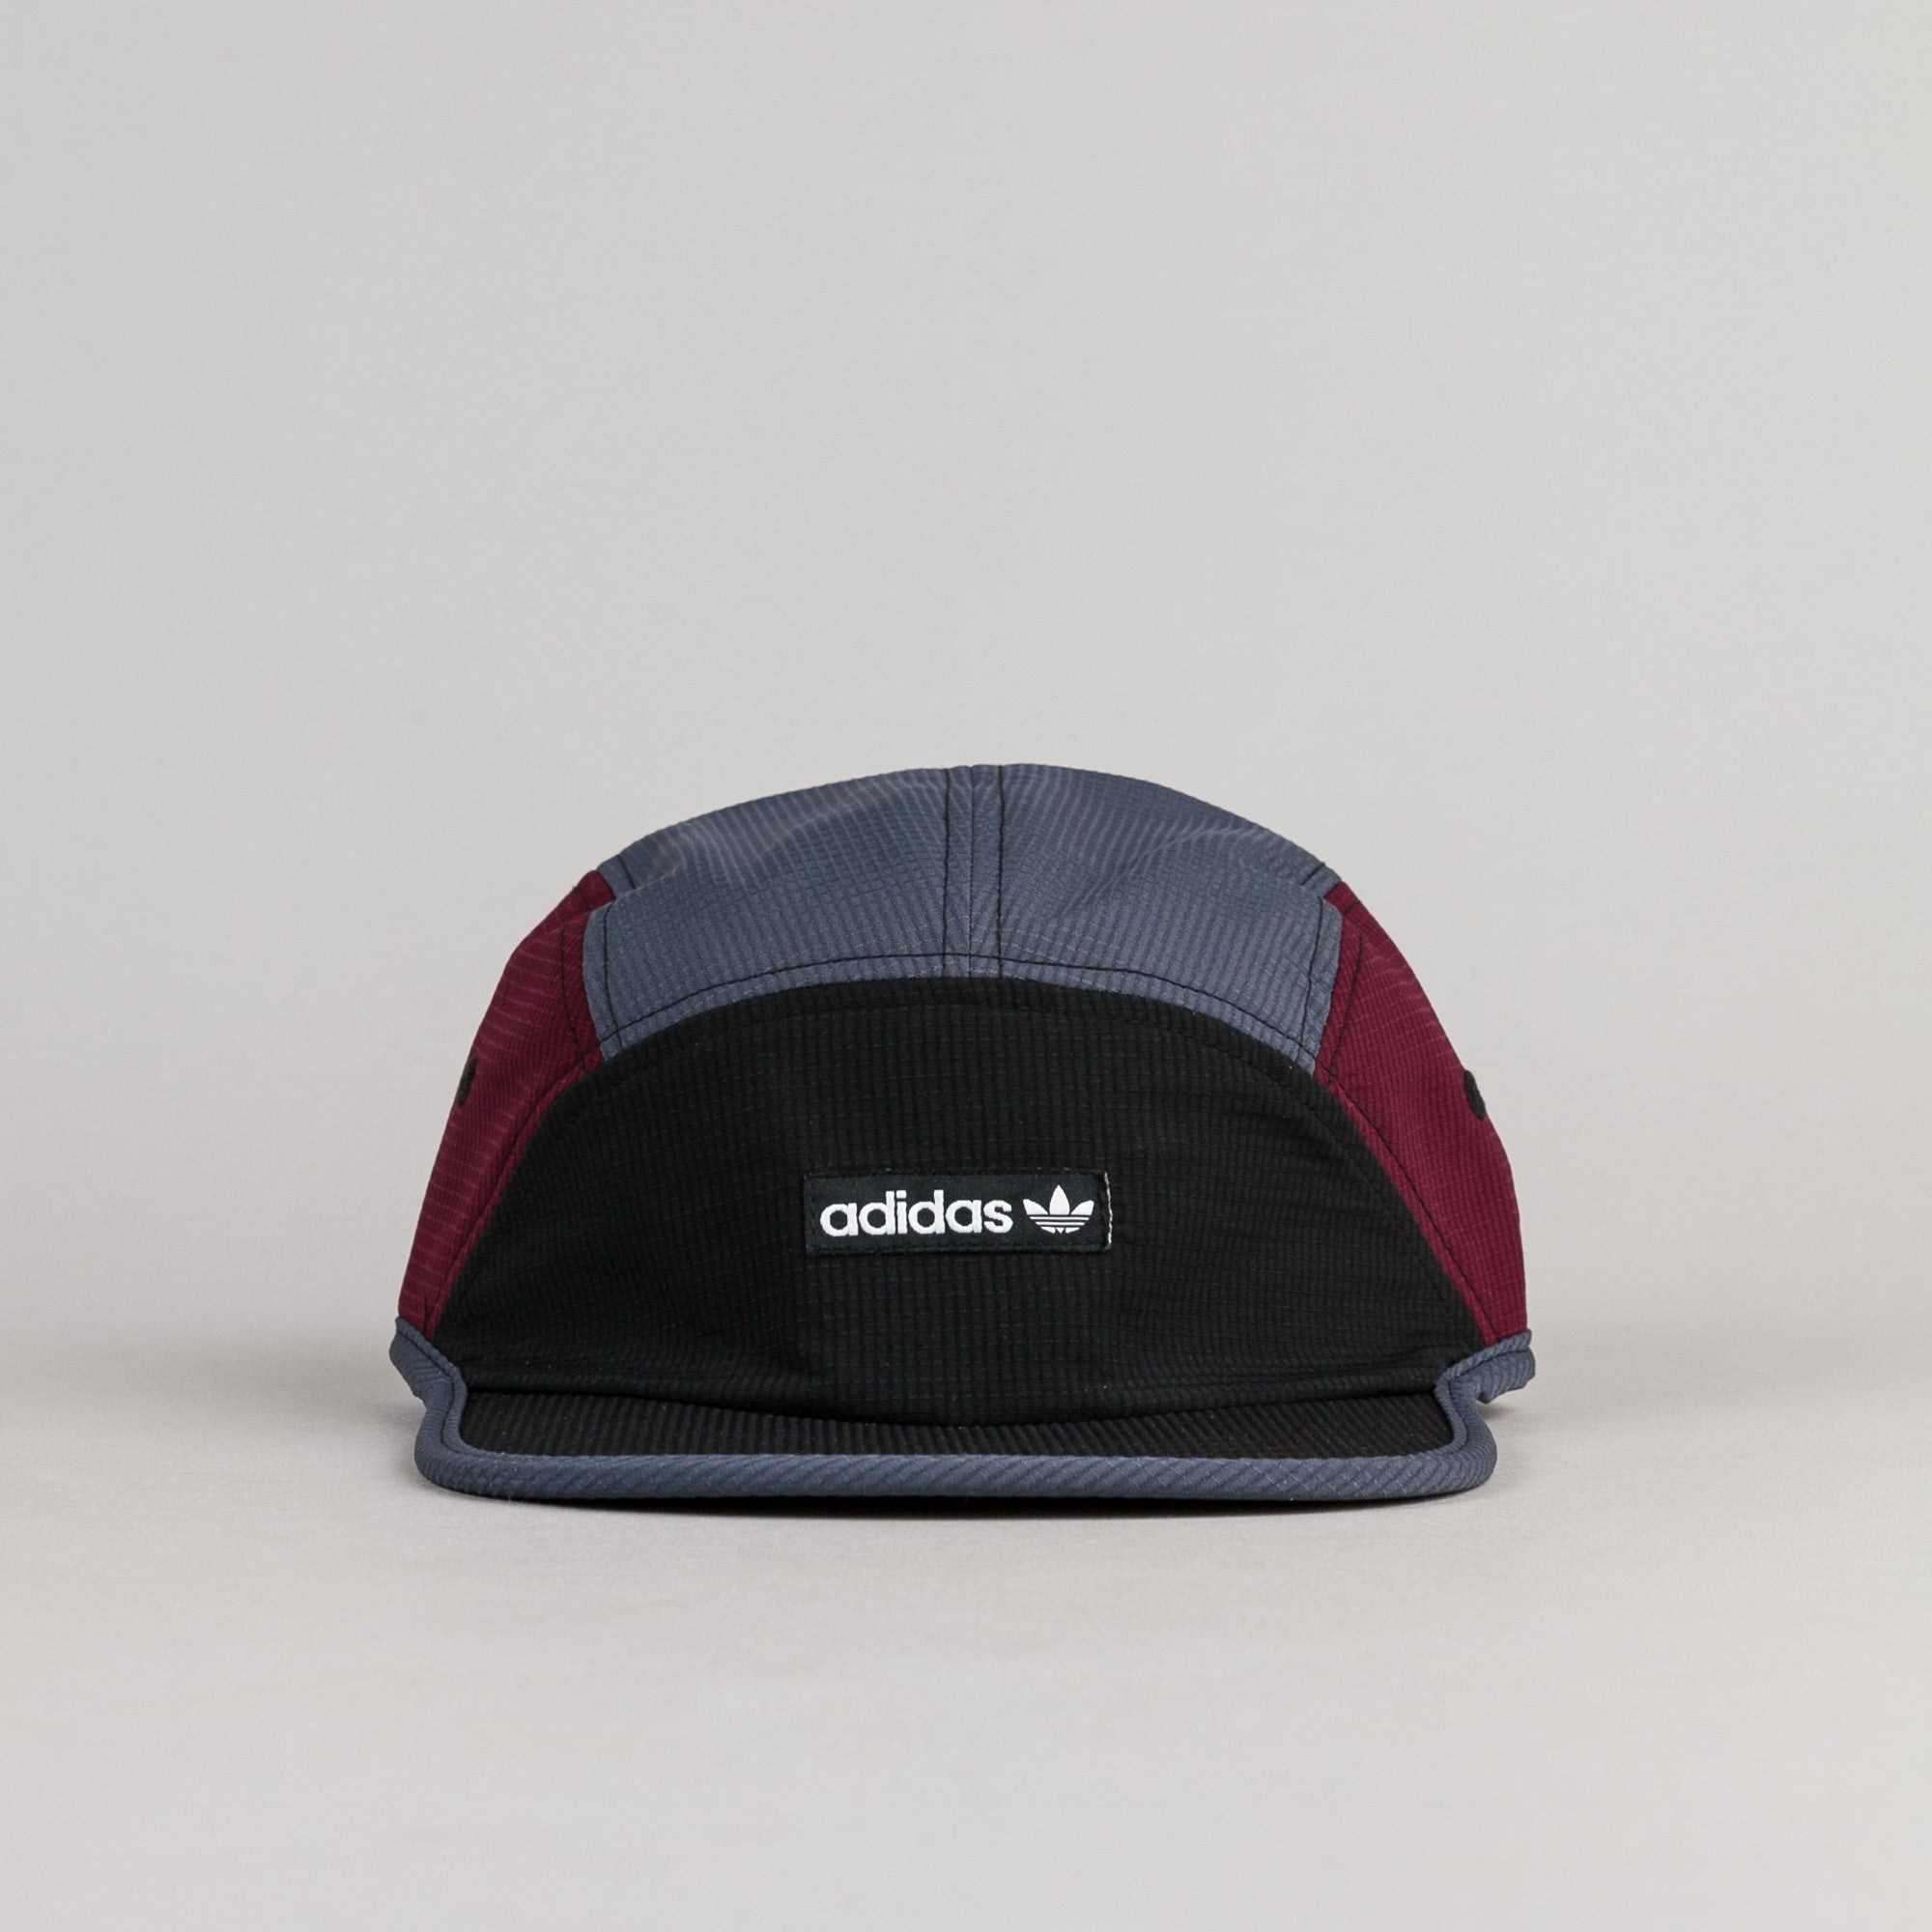 Adidas 5 Panel 2 Cap - Black / Utility Blue / Maroon